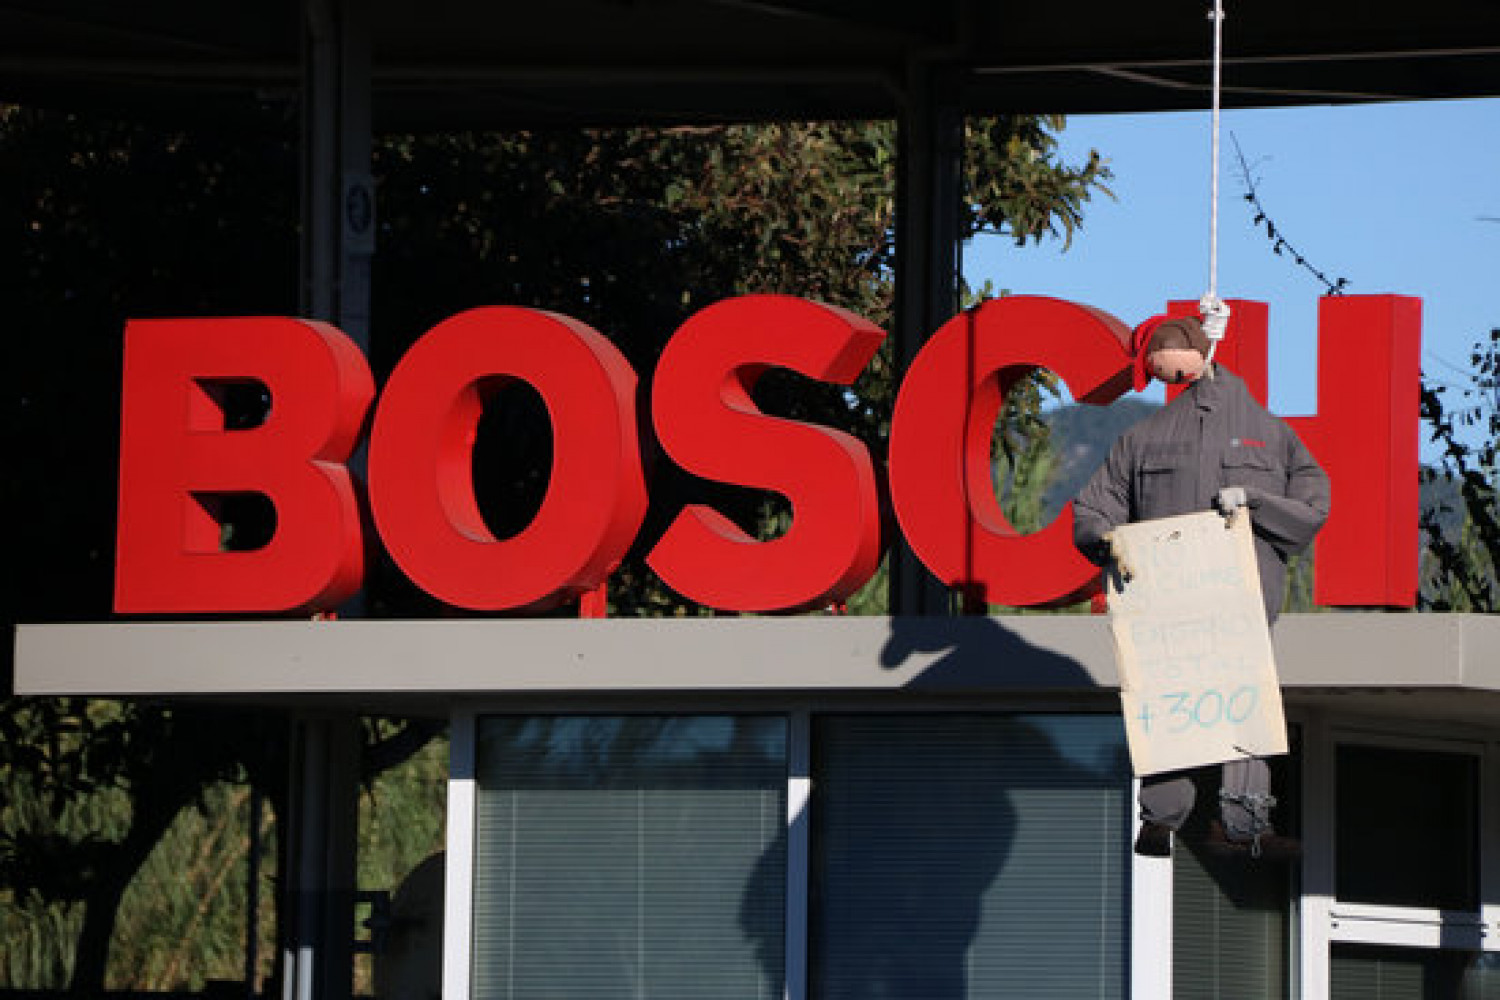 Bosch workers protest against the Castellet i La Gornal factory's closure in October 2020 (by Gemma Sánchez)